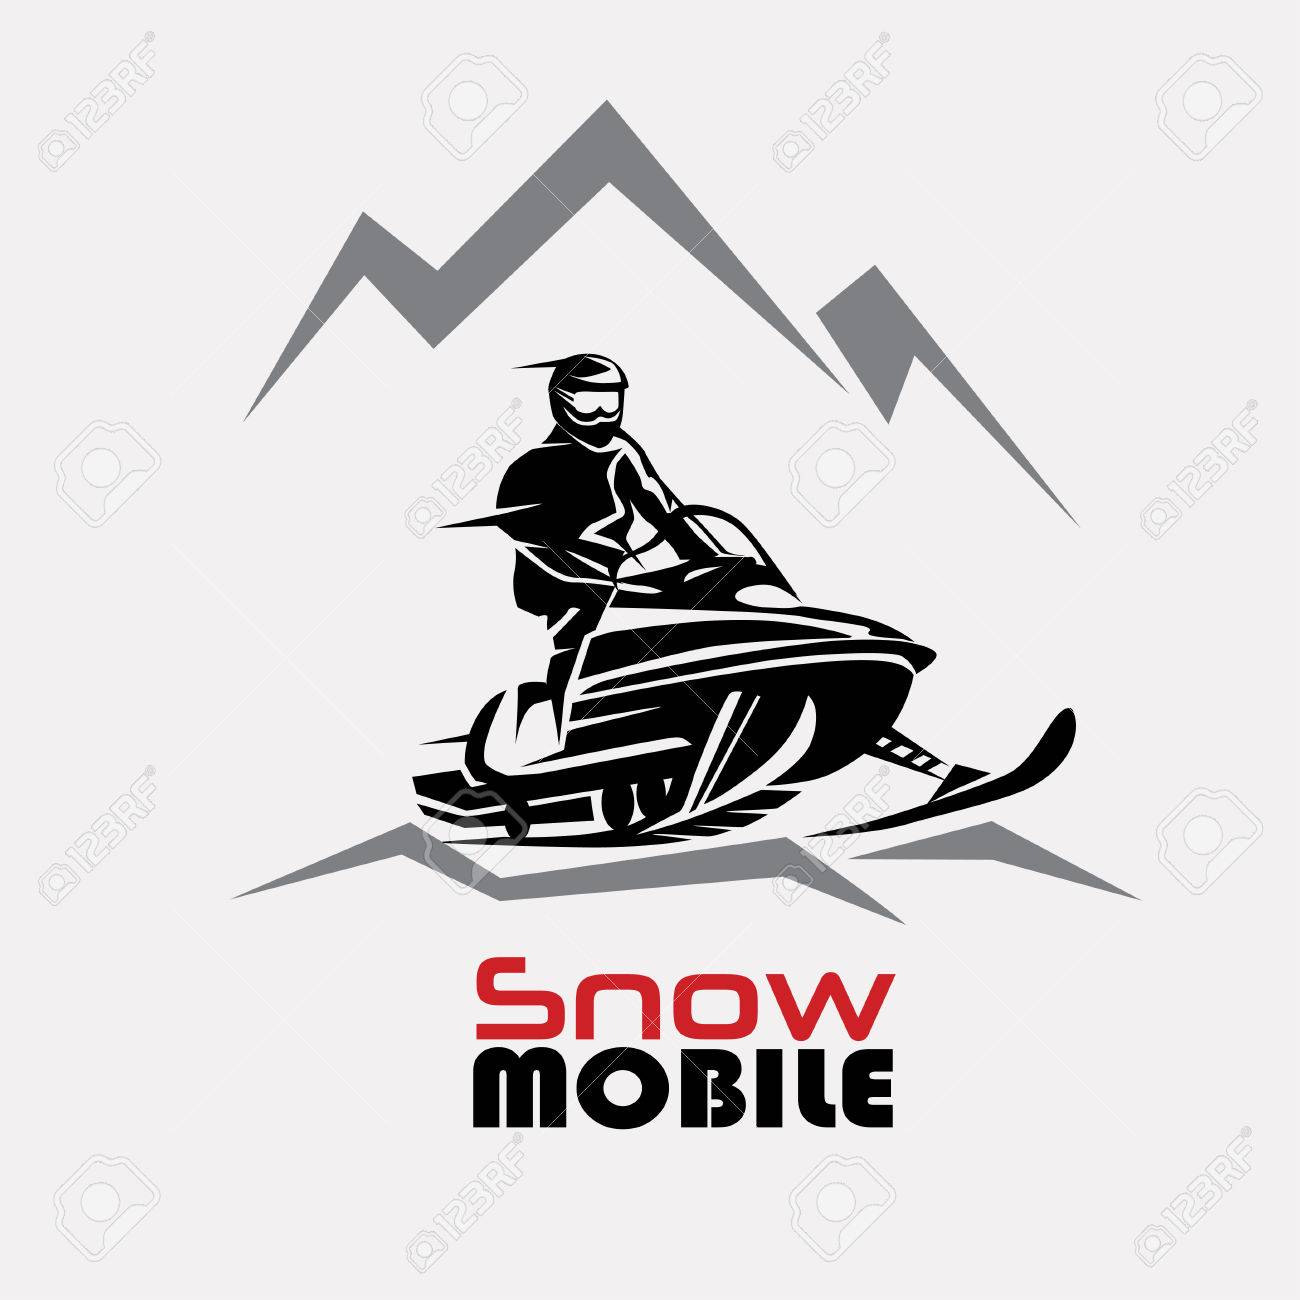 snowmobile logo template, stylized vector symbol - 69262447